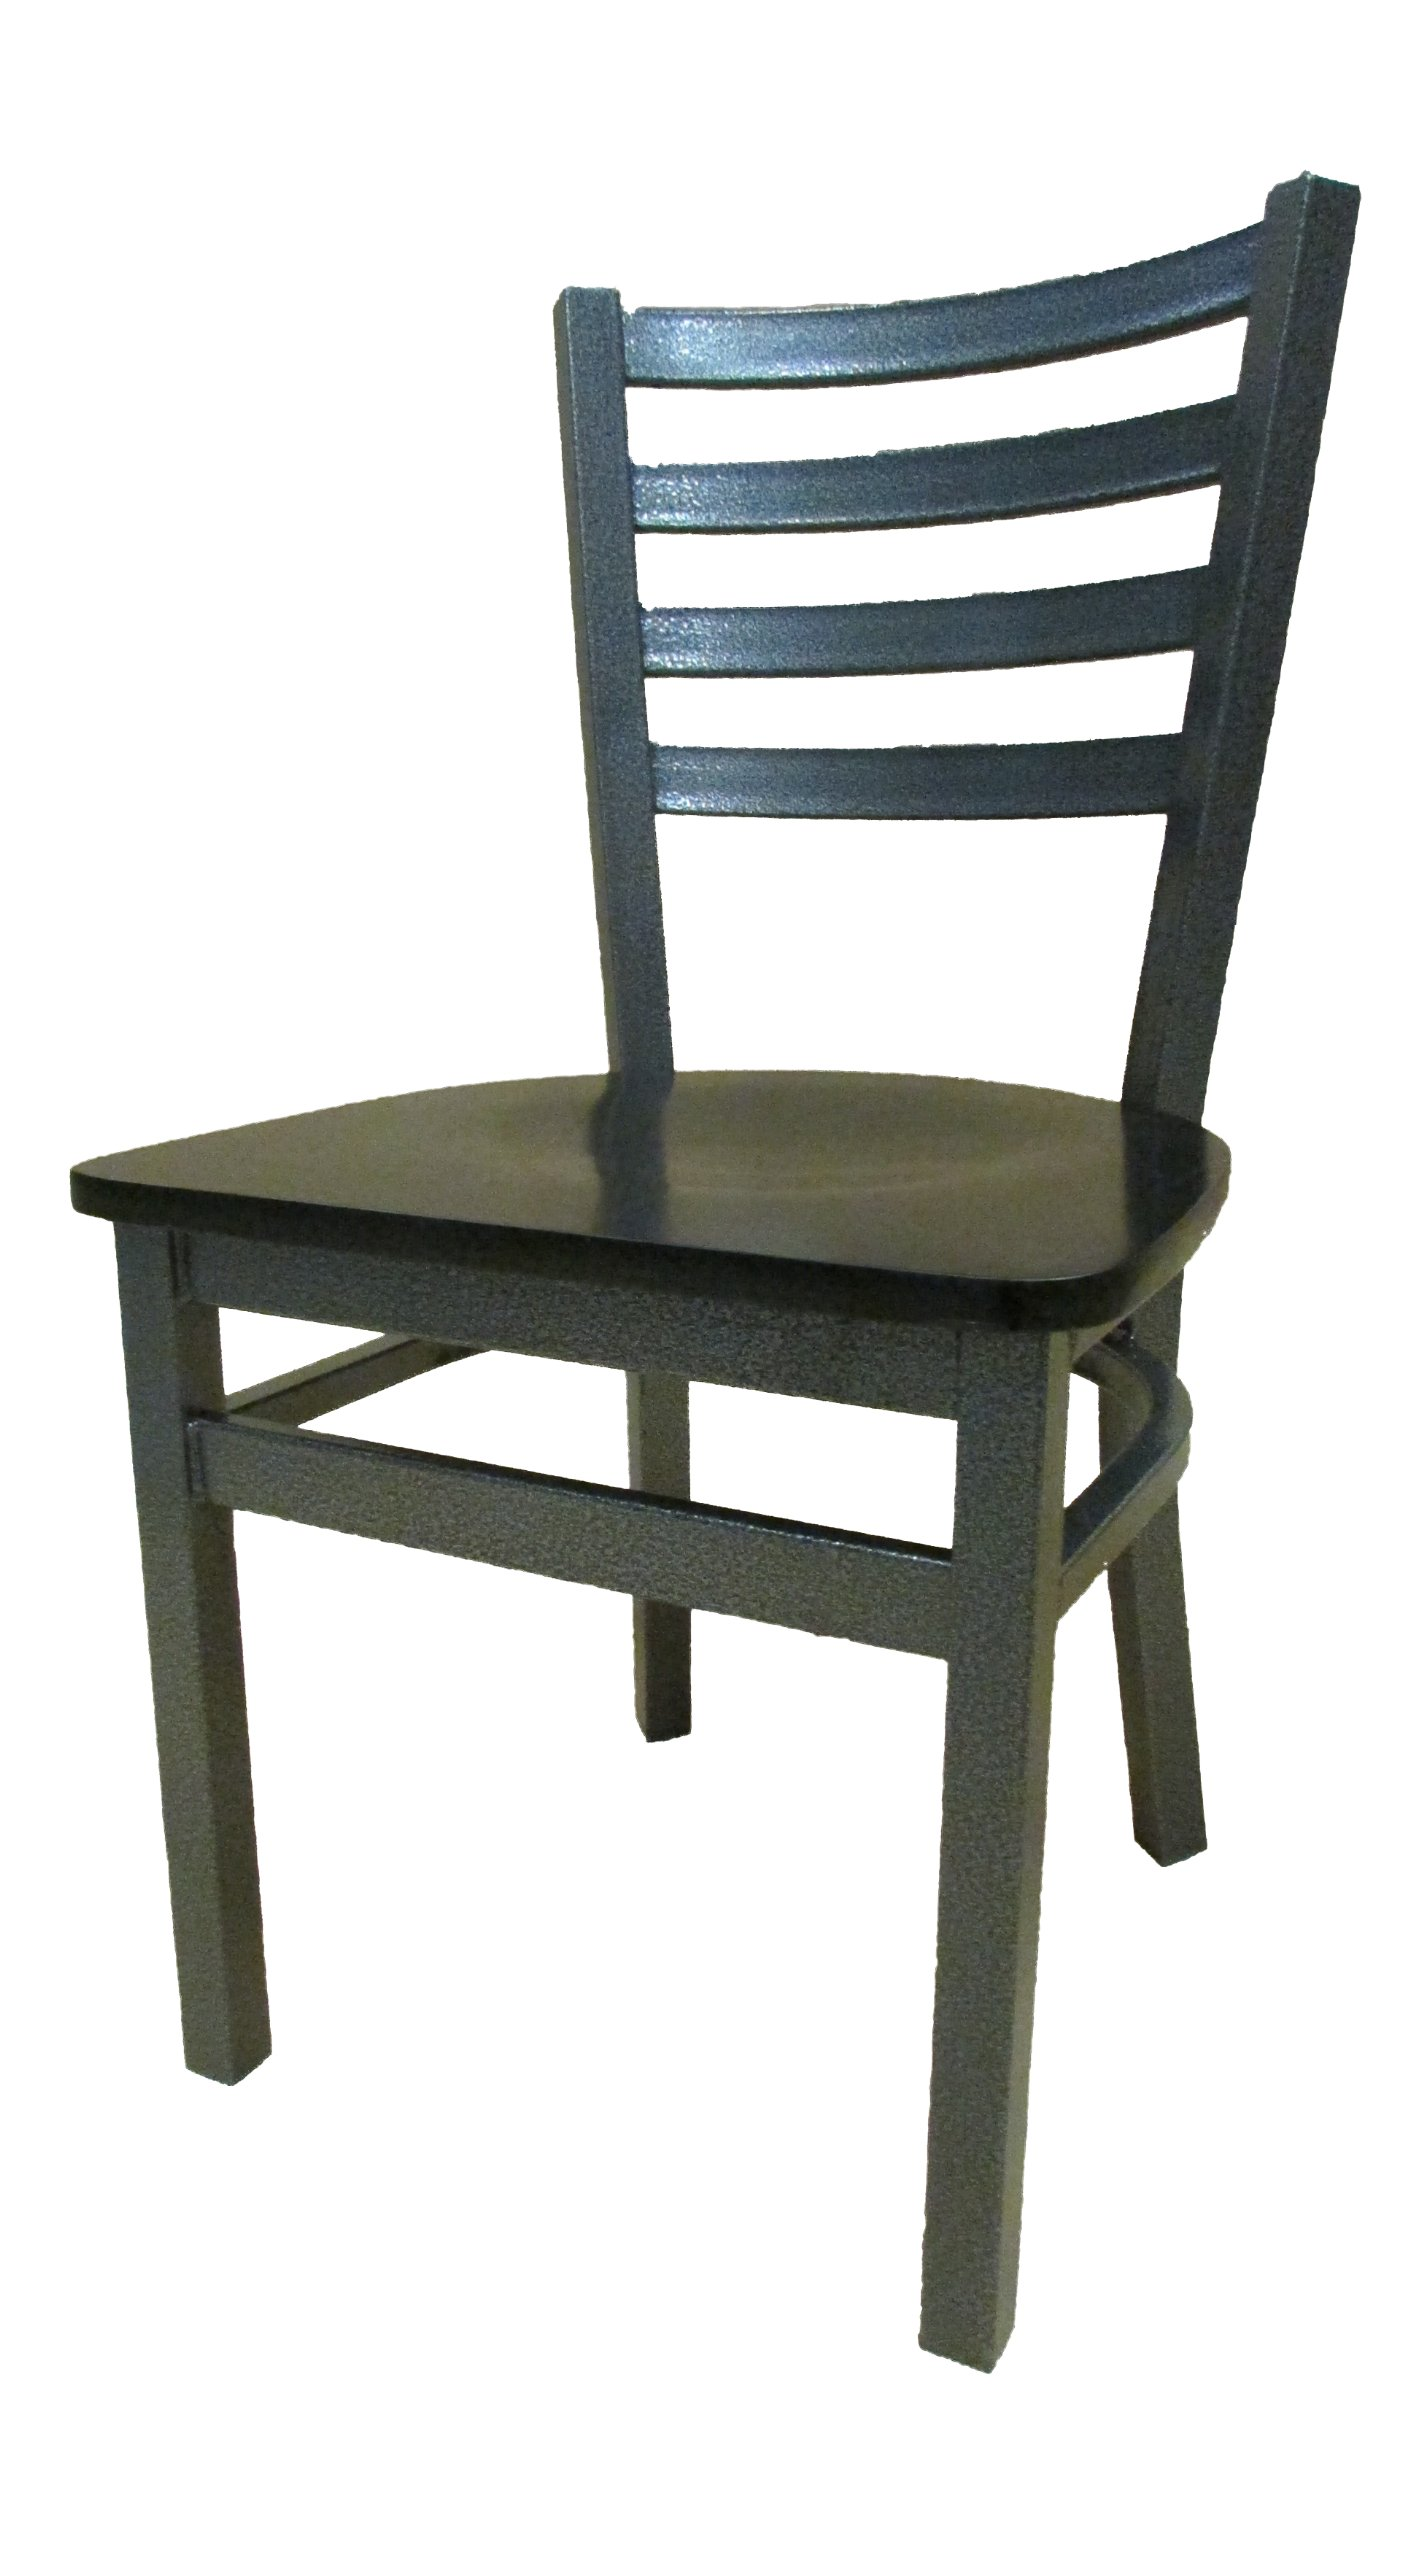 Oak Street Manufacturing SL2160SV-WB Metal Frame Silvervein Ladderback Dining Chair with Black Wood Seat, 18'' Width x 32-3/8'' Height x 17'' Depth